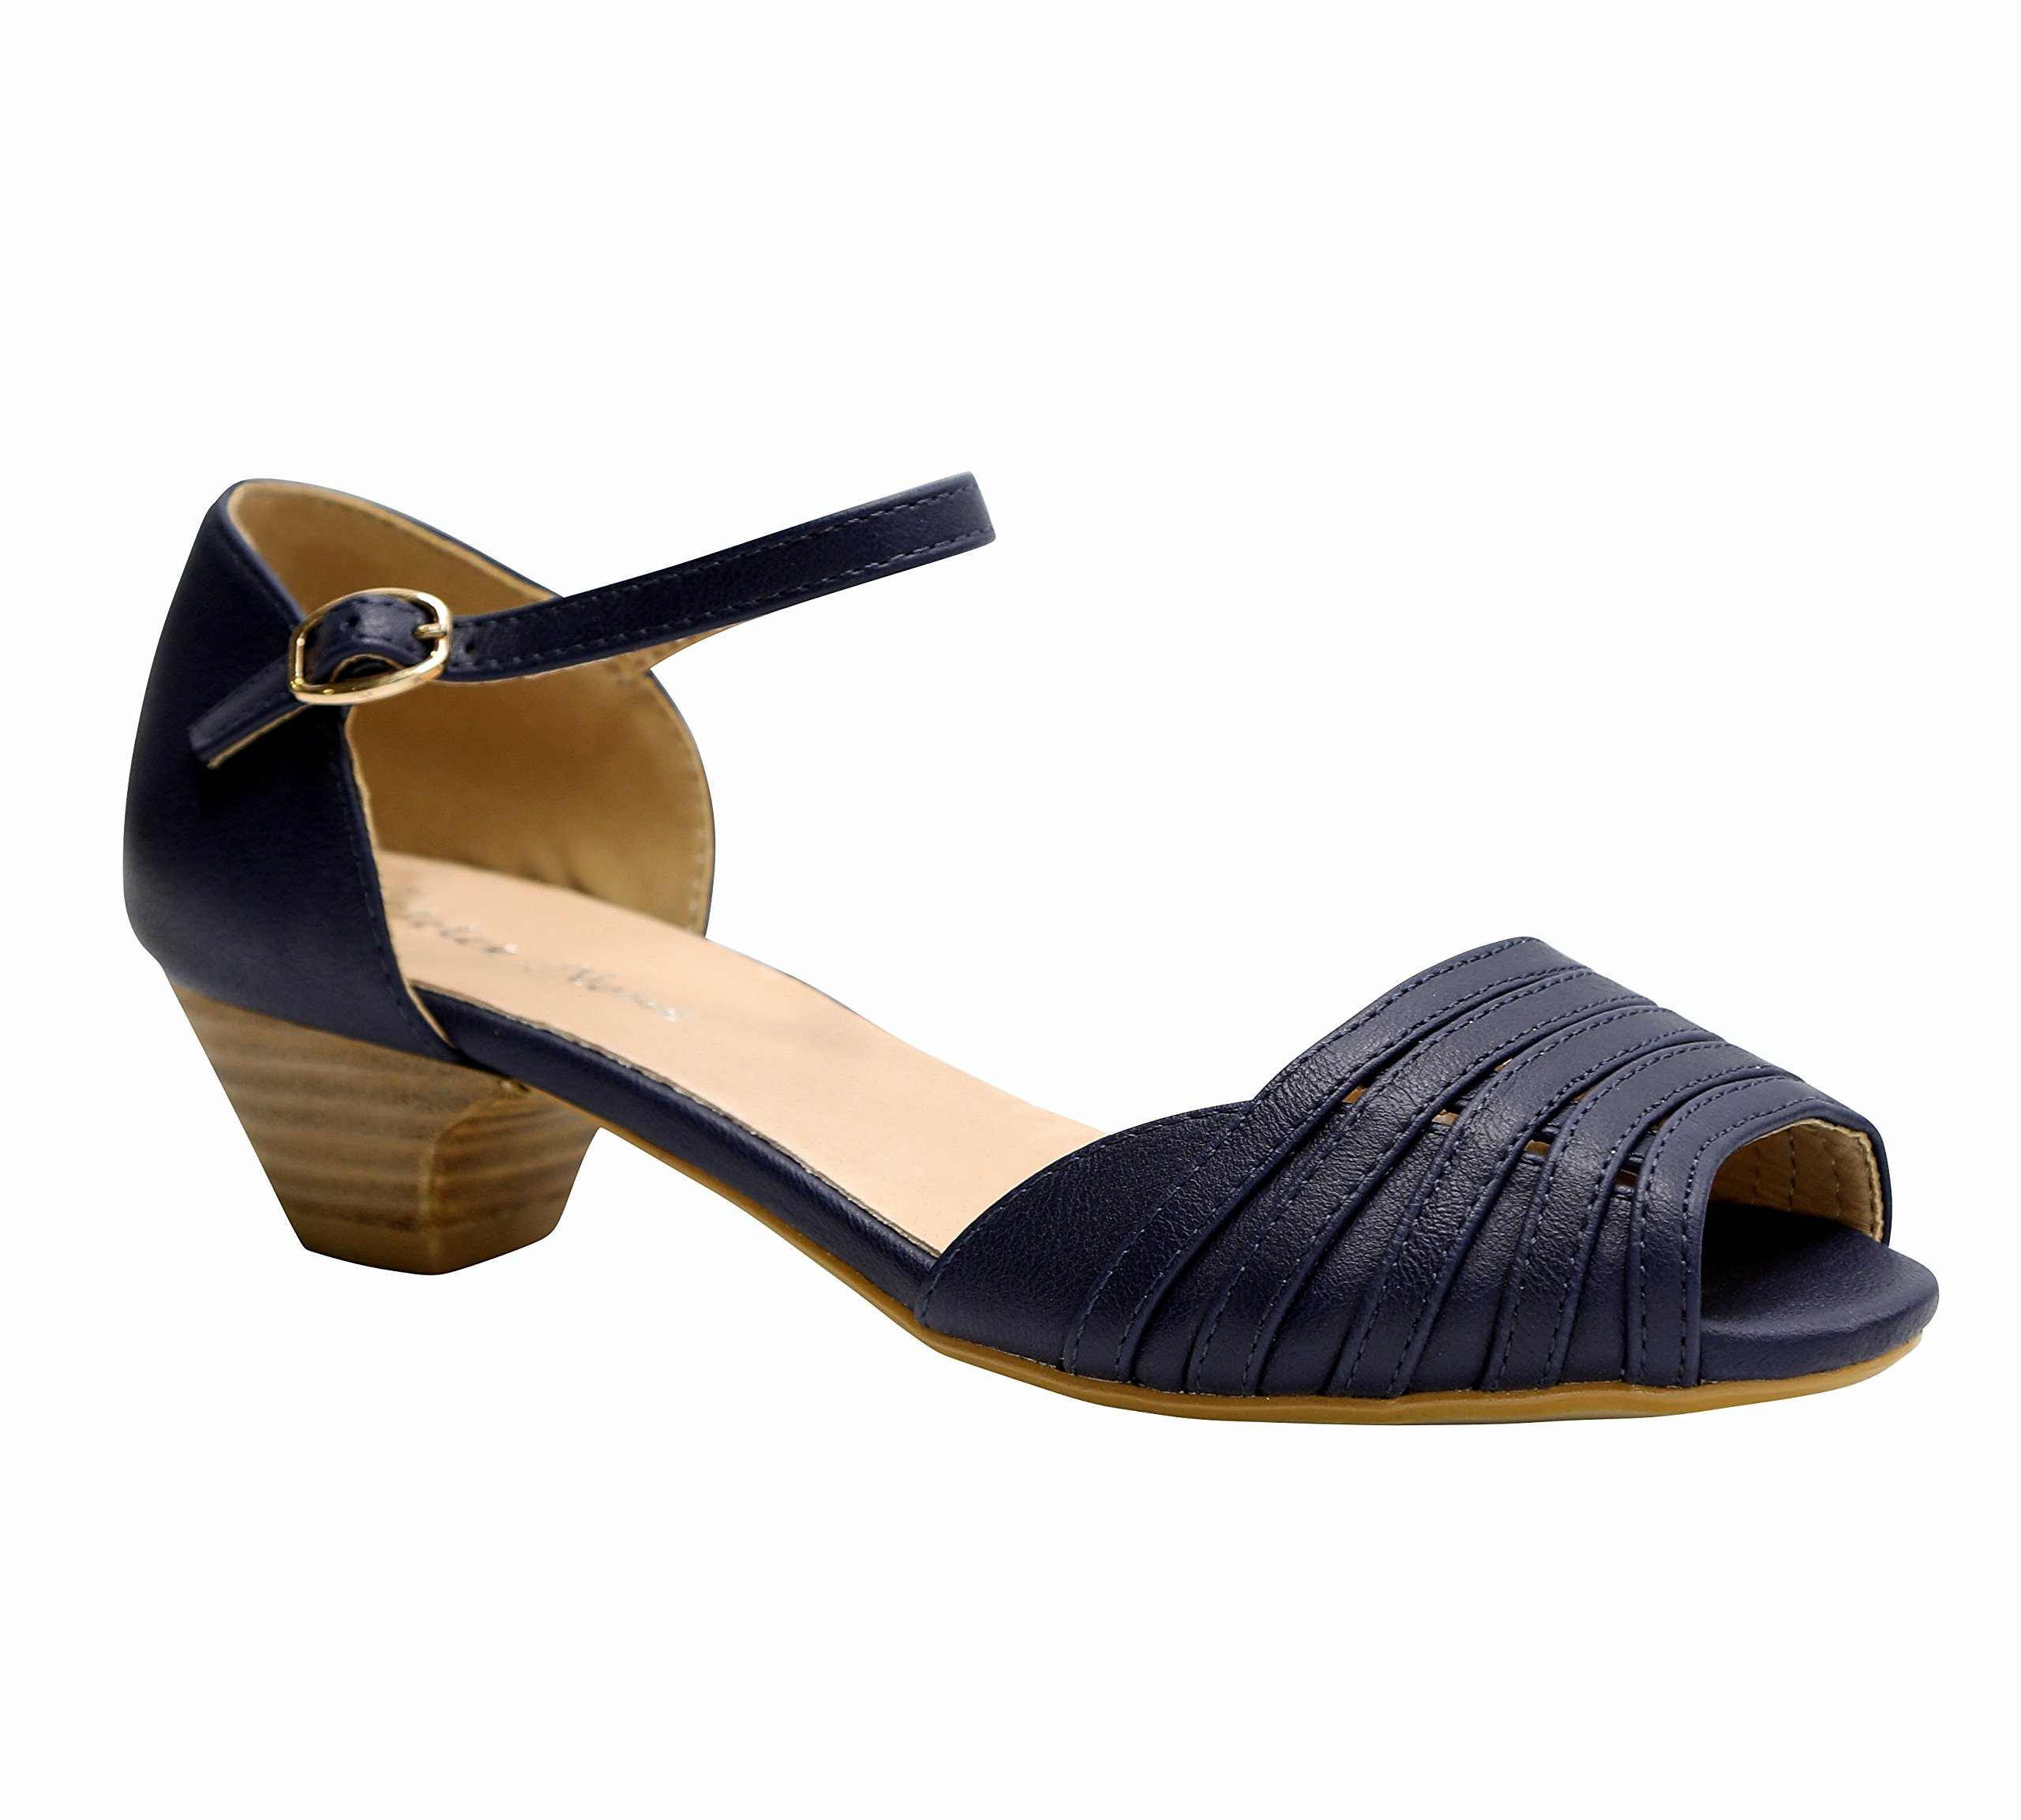 Dolce Nome Open Toe Low Heels Women's Designer Shoes Italian Style Well Constructed Ladies Fancy Shoes (38, Navy)